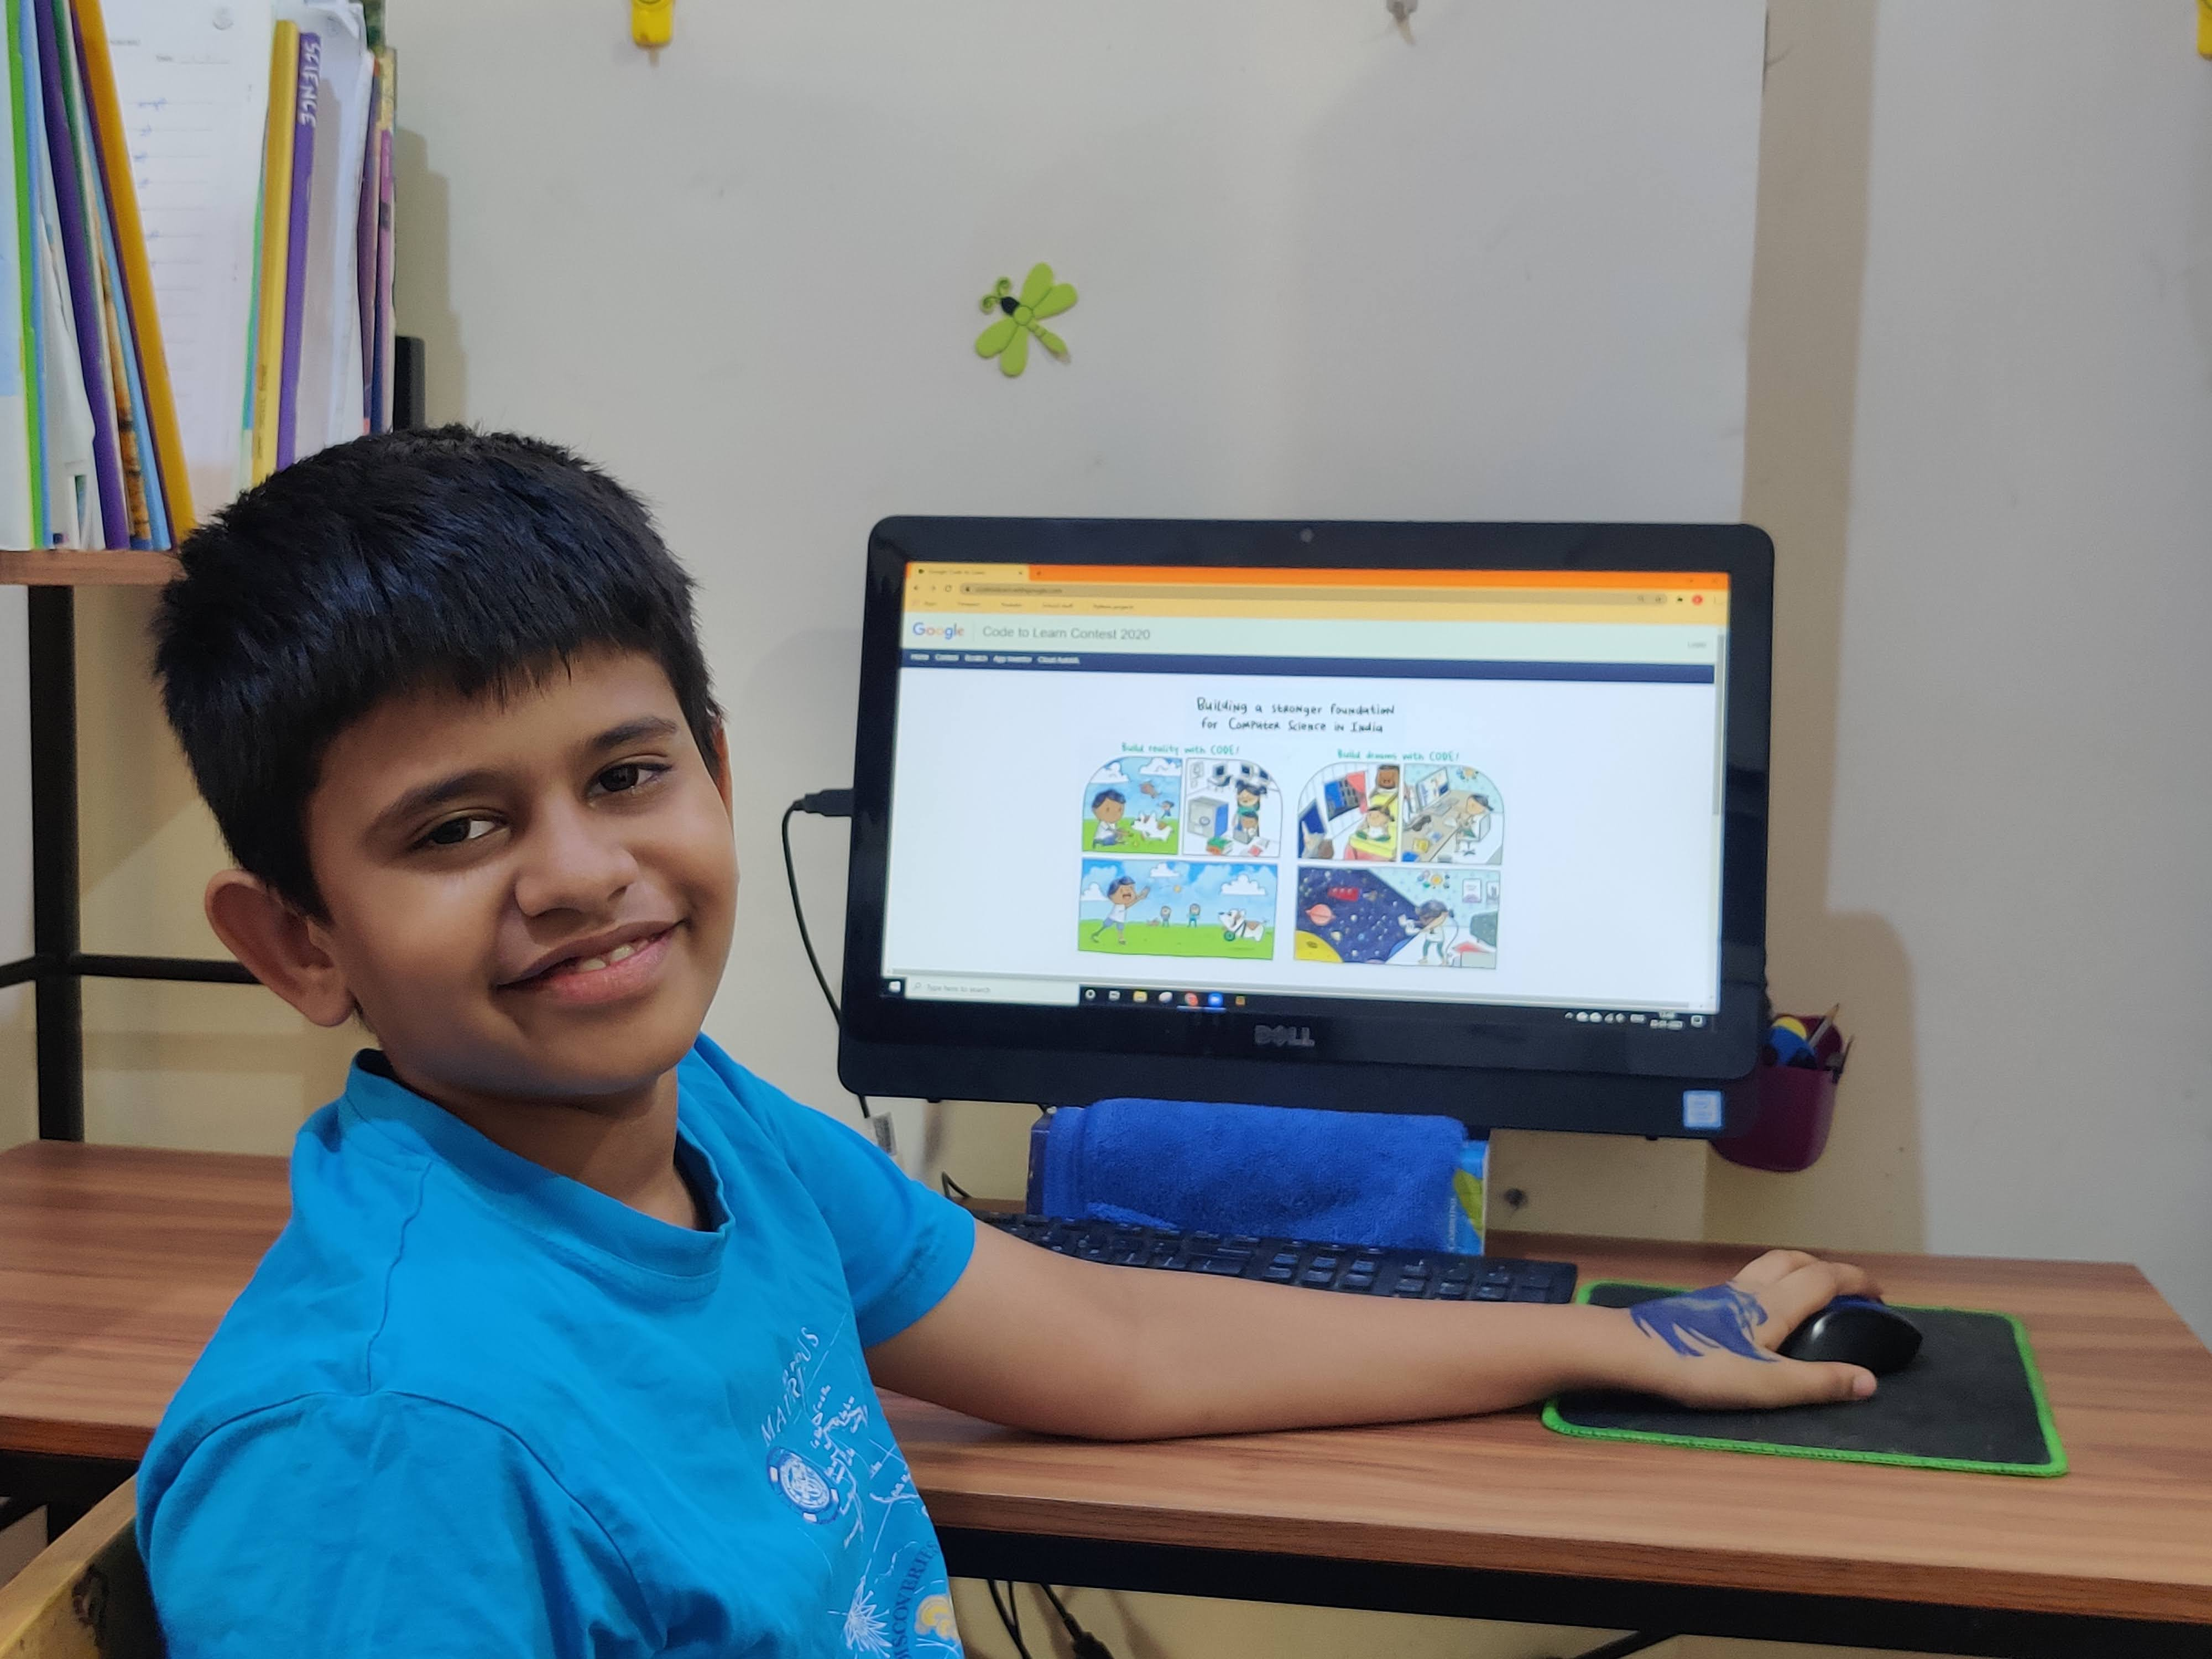 A Class 5 student of BHIS emerged as Winner in All India coding contest conducted by Google